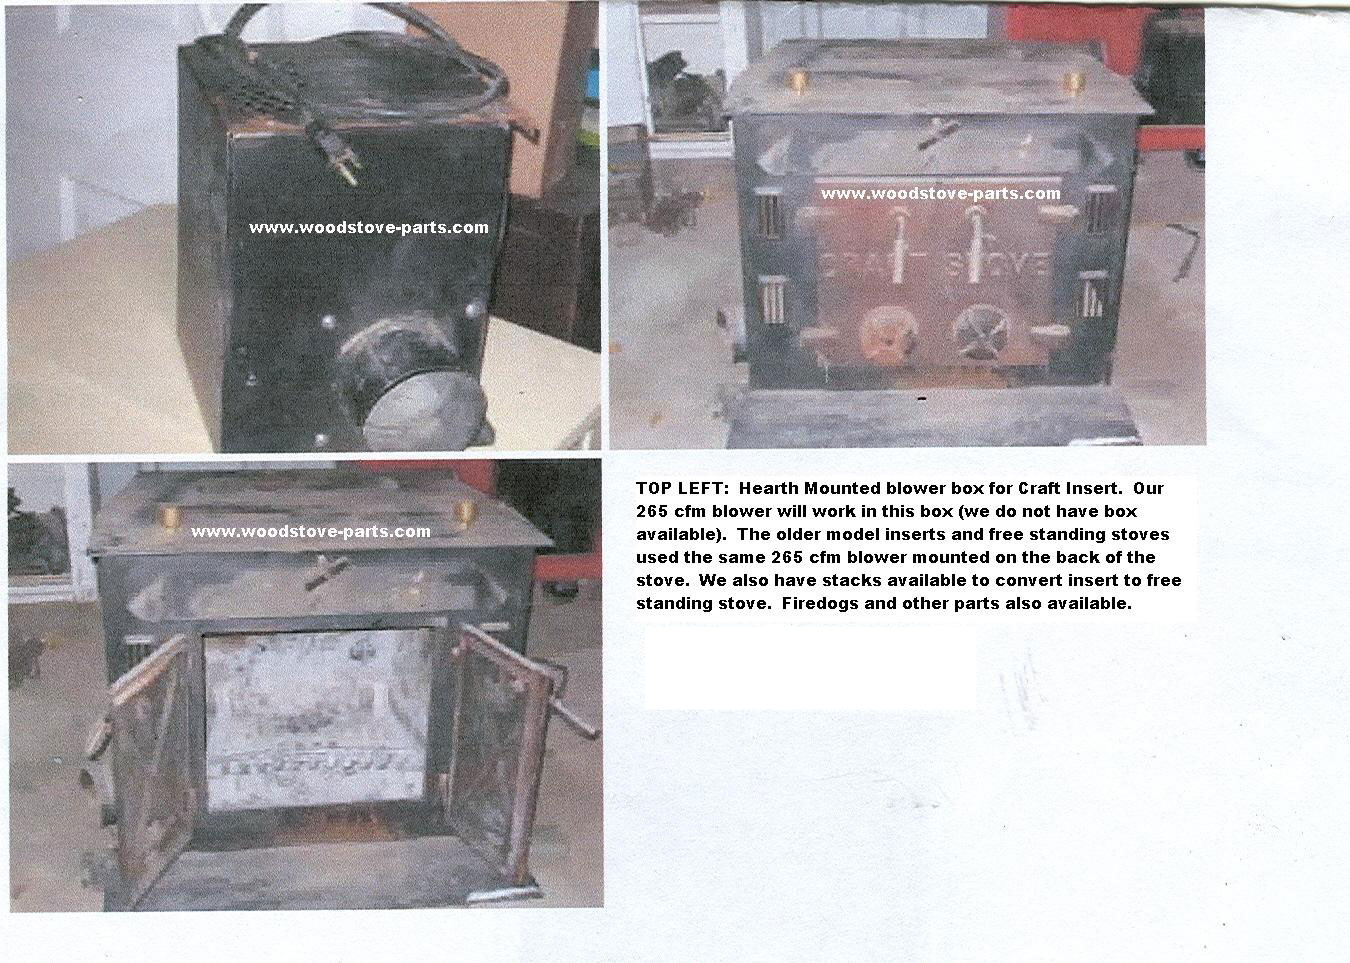 wiring diagram for wood stove blower bo 2685  blower on wood stove blower motor wiring diagram  wood stove blower motor wiring diagram